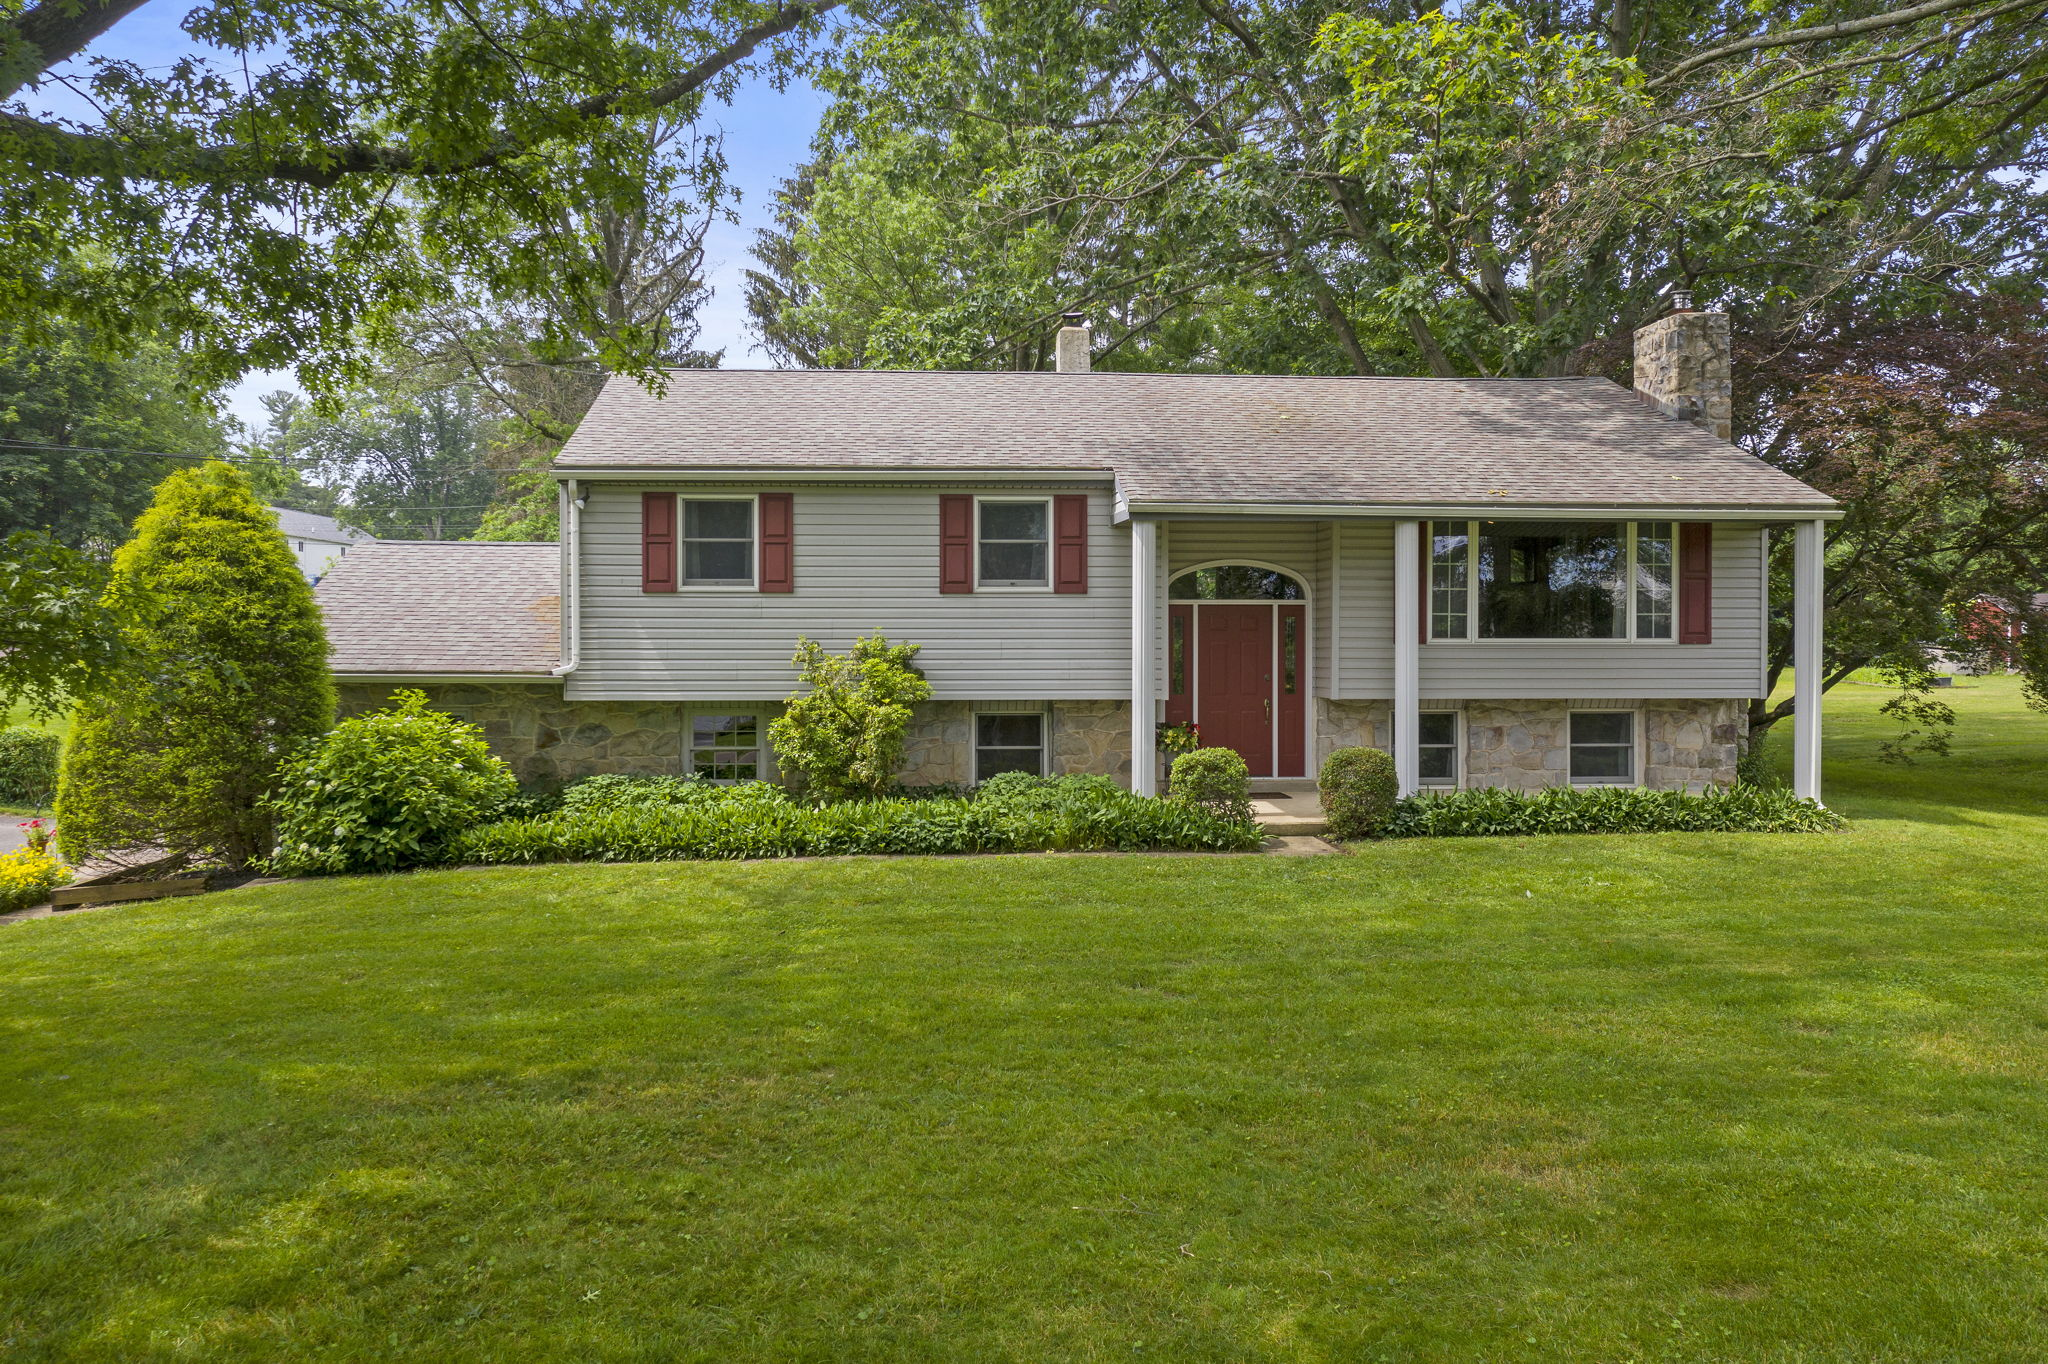 Turnkey & Expanded Home In The Desirable OJR School District